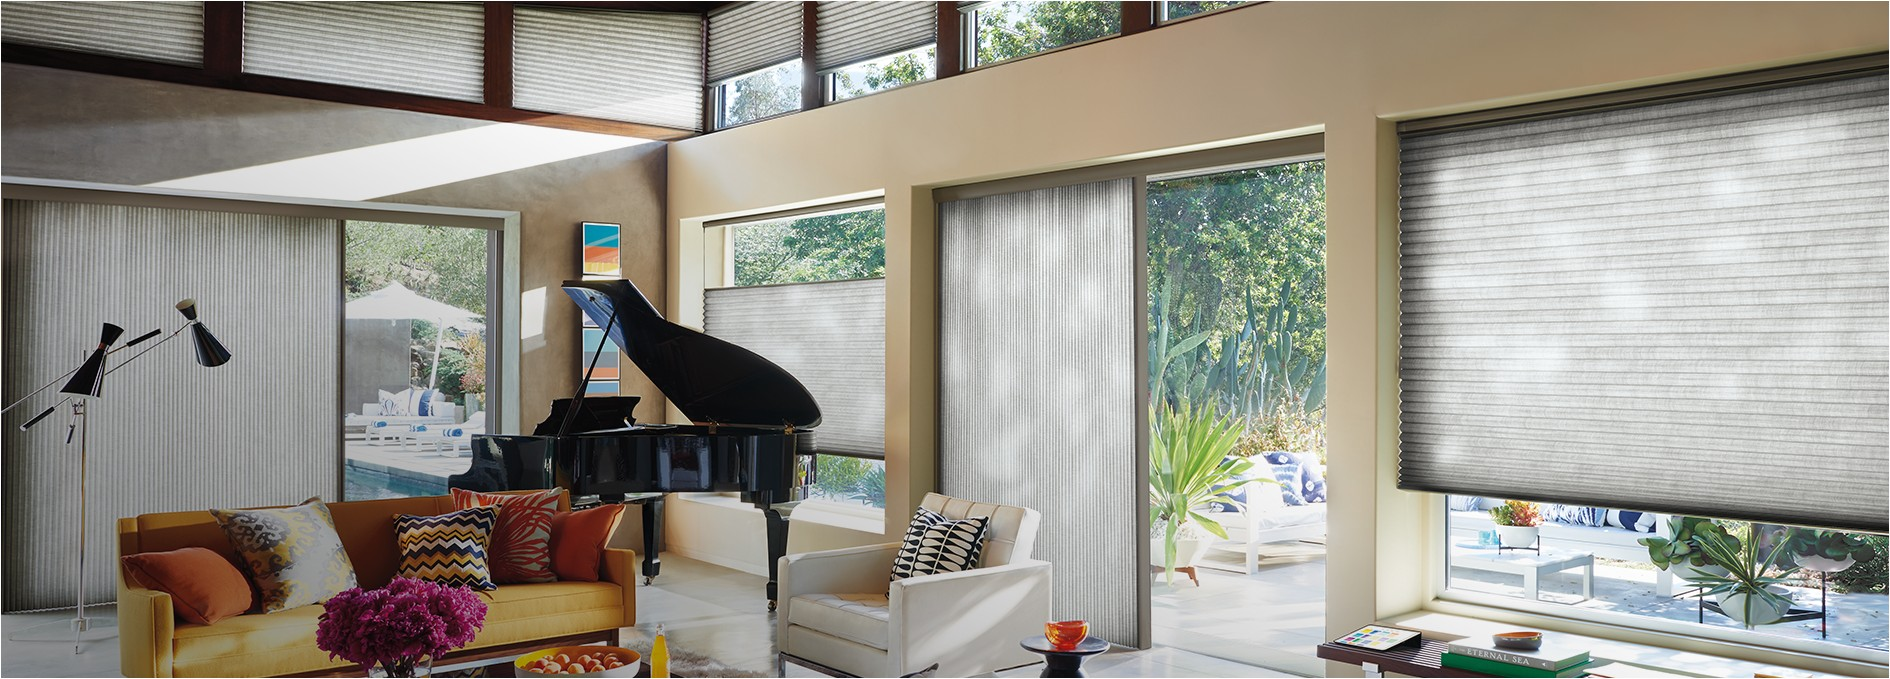 Honeycomb Shades with Vertiglide Hunter Douglas Vertiglide Operating System today S Window